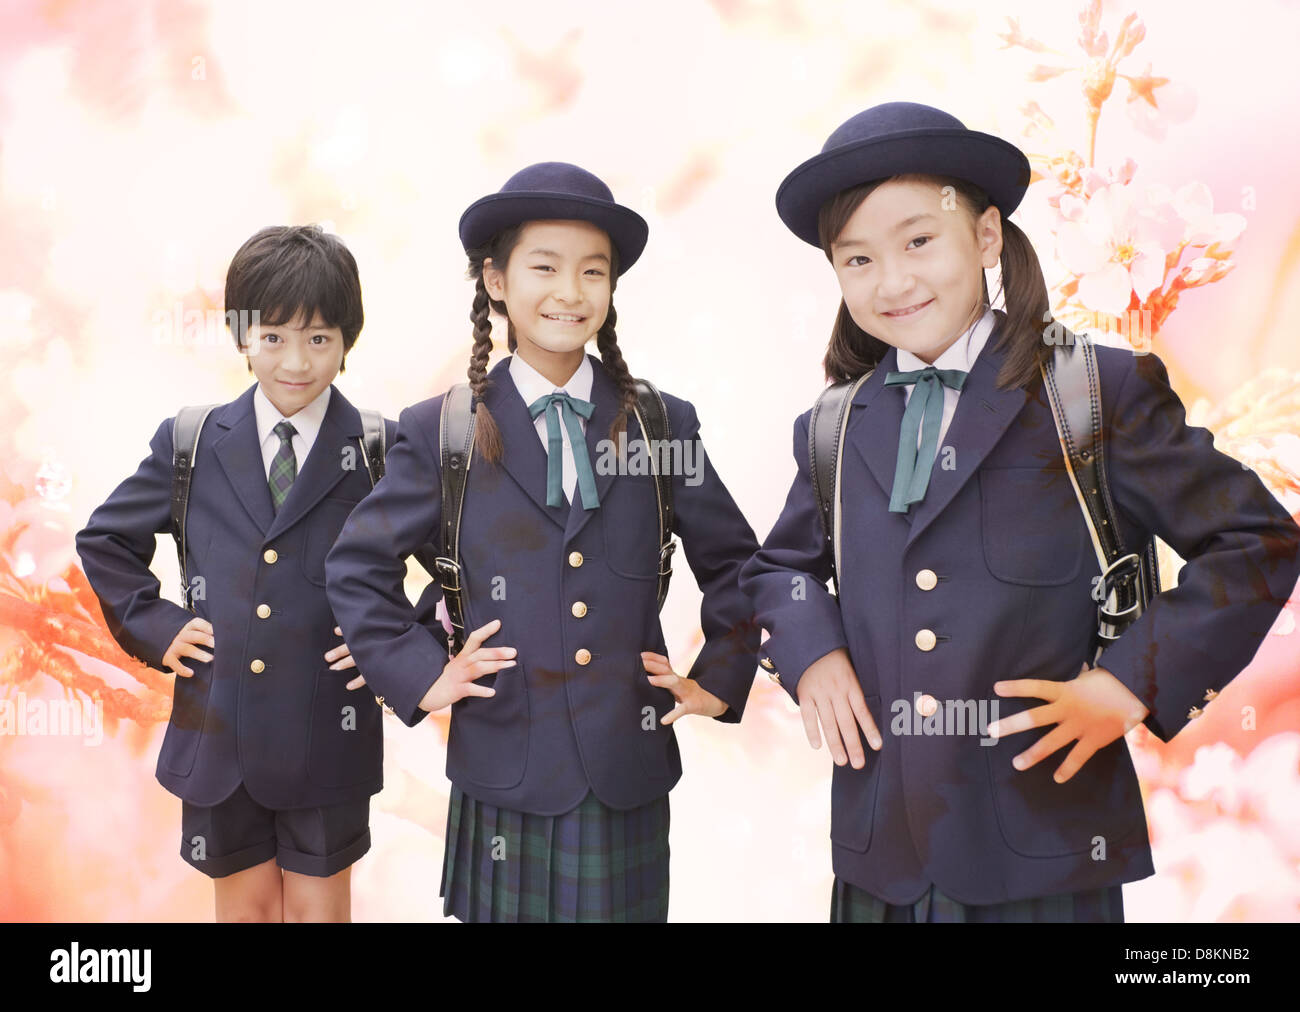 Elementary students in uniform